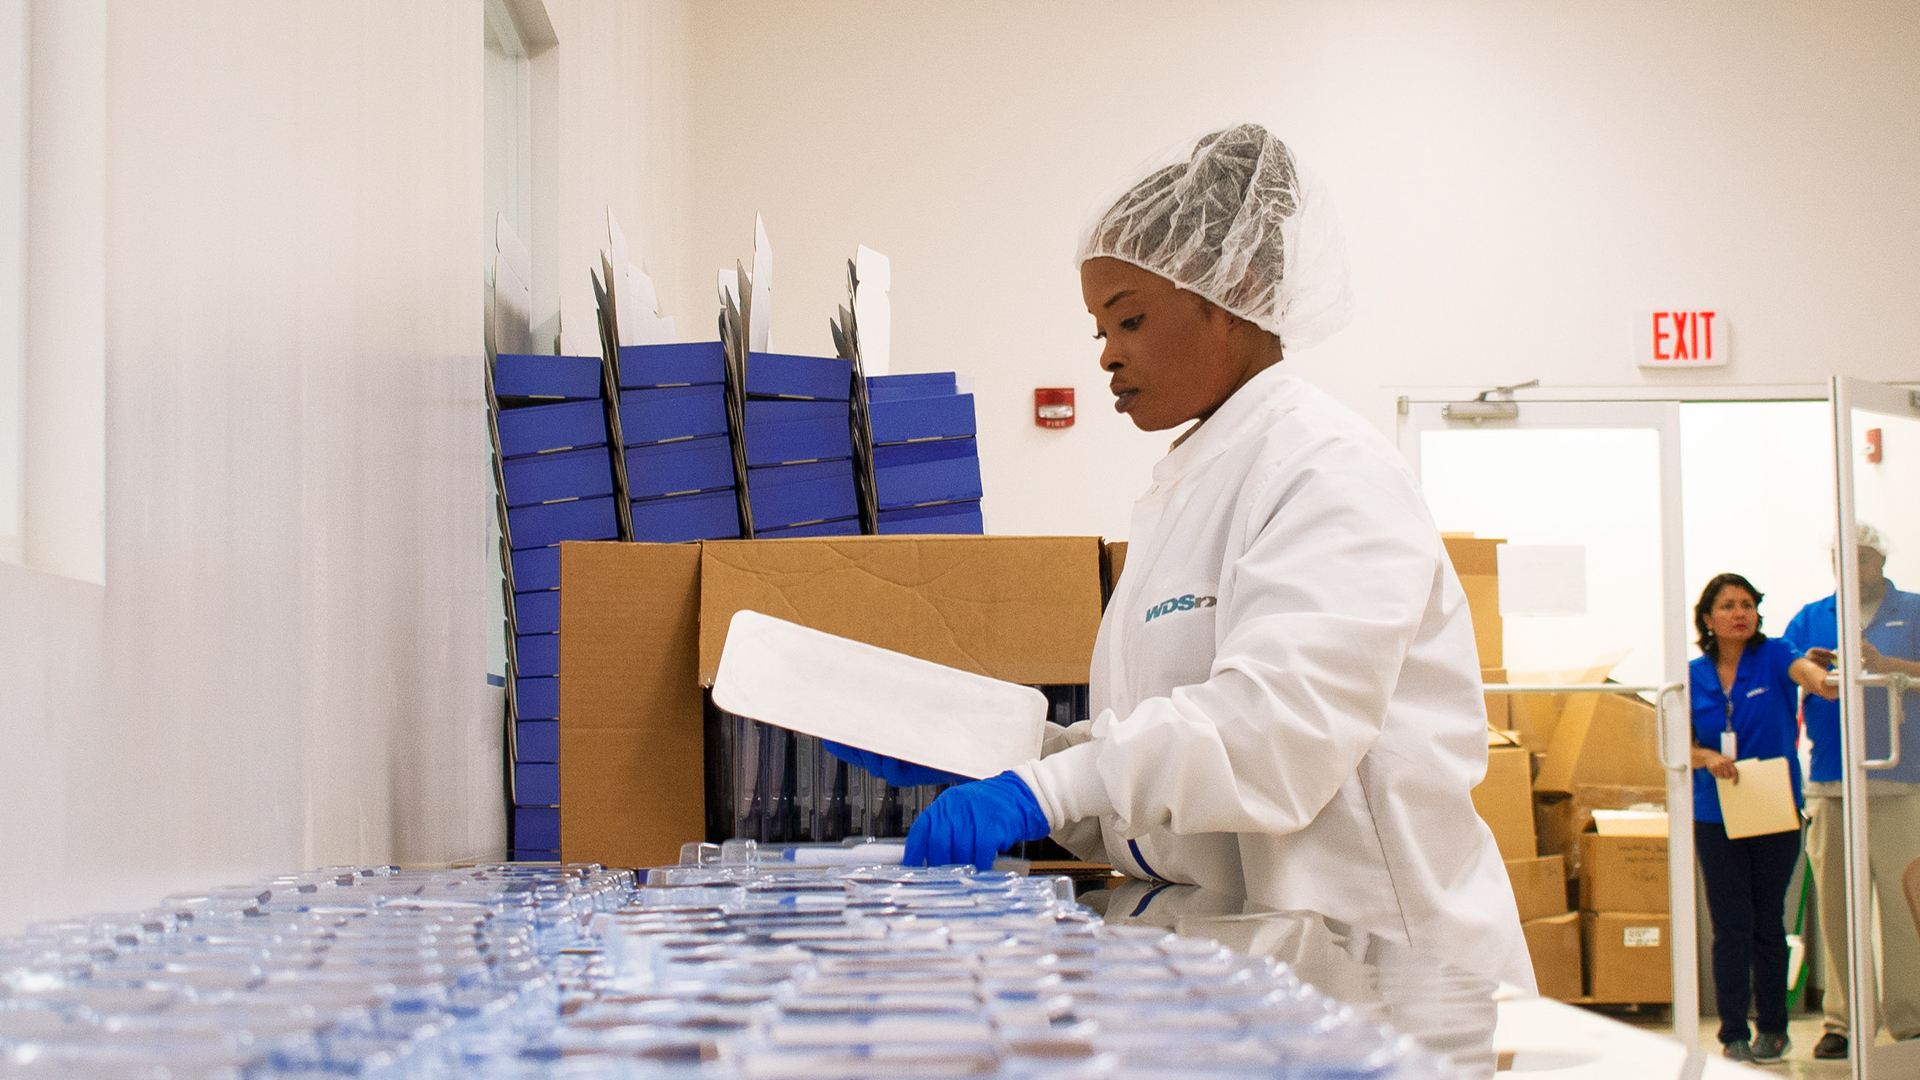 WDSrx Production Technician begins packaging a medical device kit.